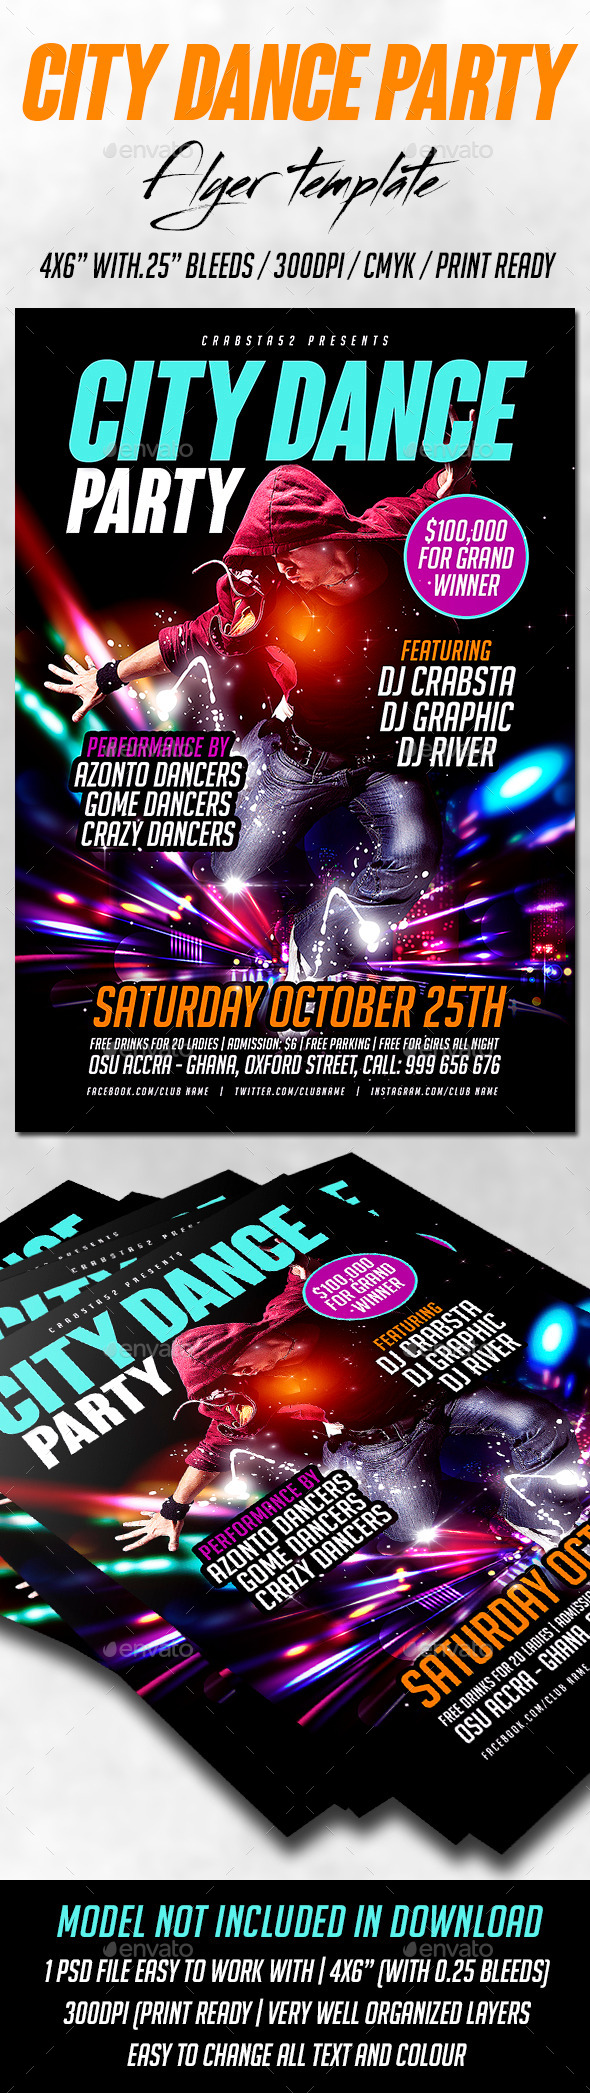 City Dance Party Flyer Template - Clubs & Parties Events